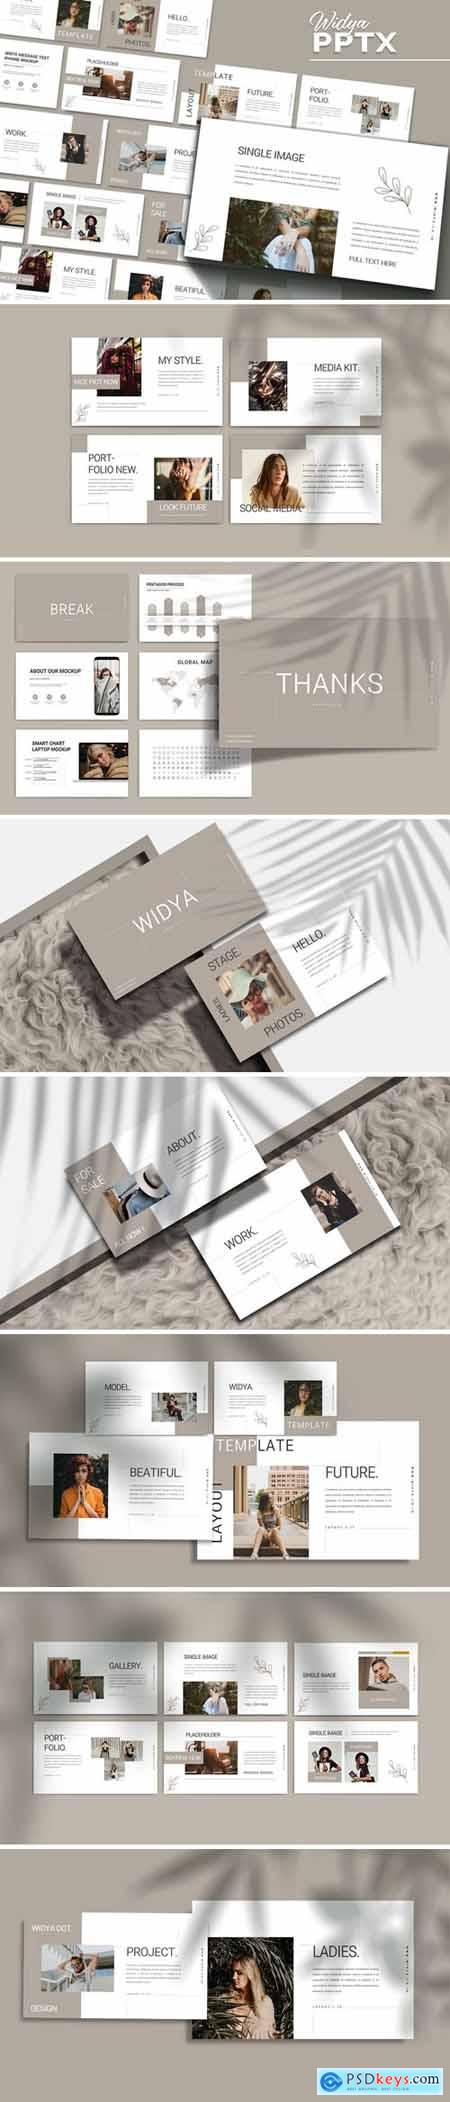 WIDYA - Fashion Powerpoint, Keynote and Google Slides Templates